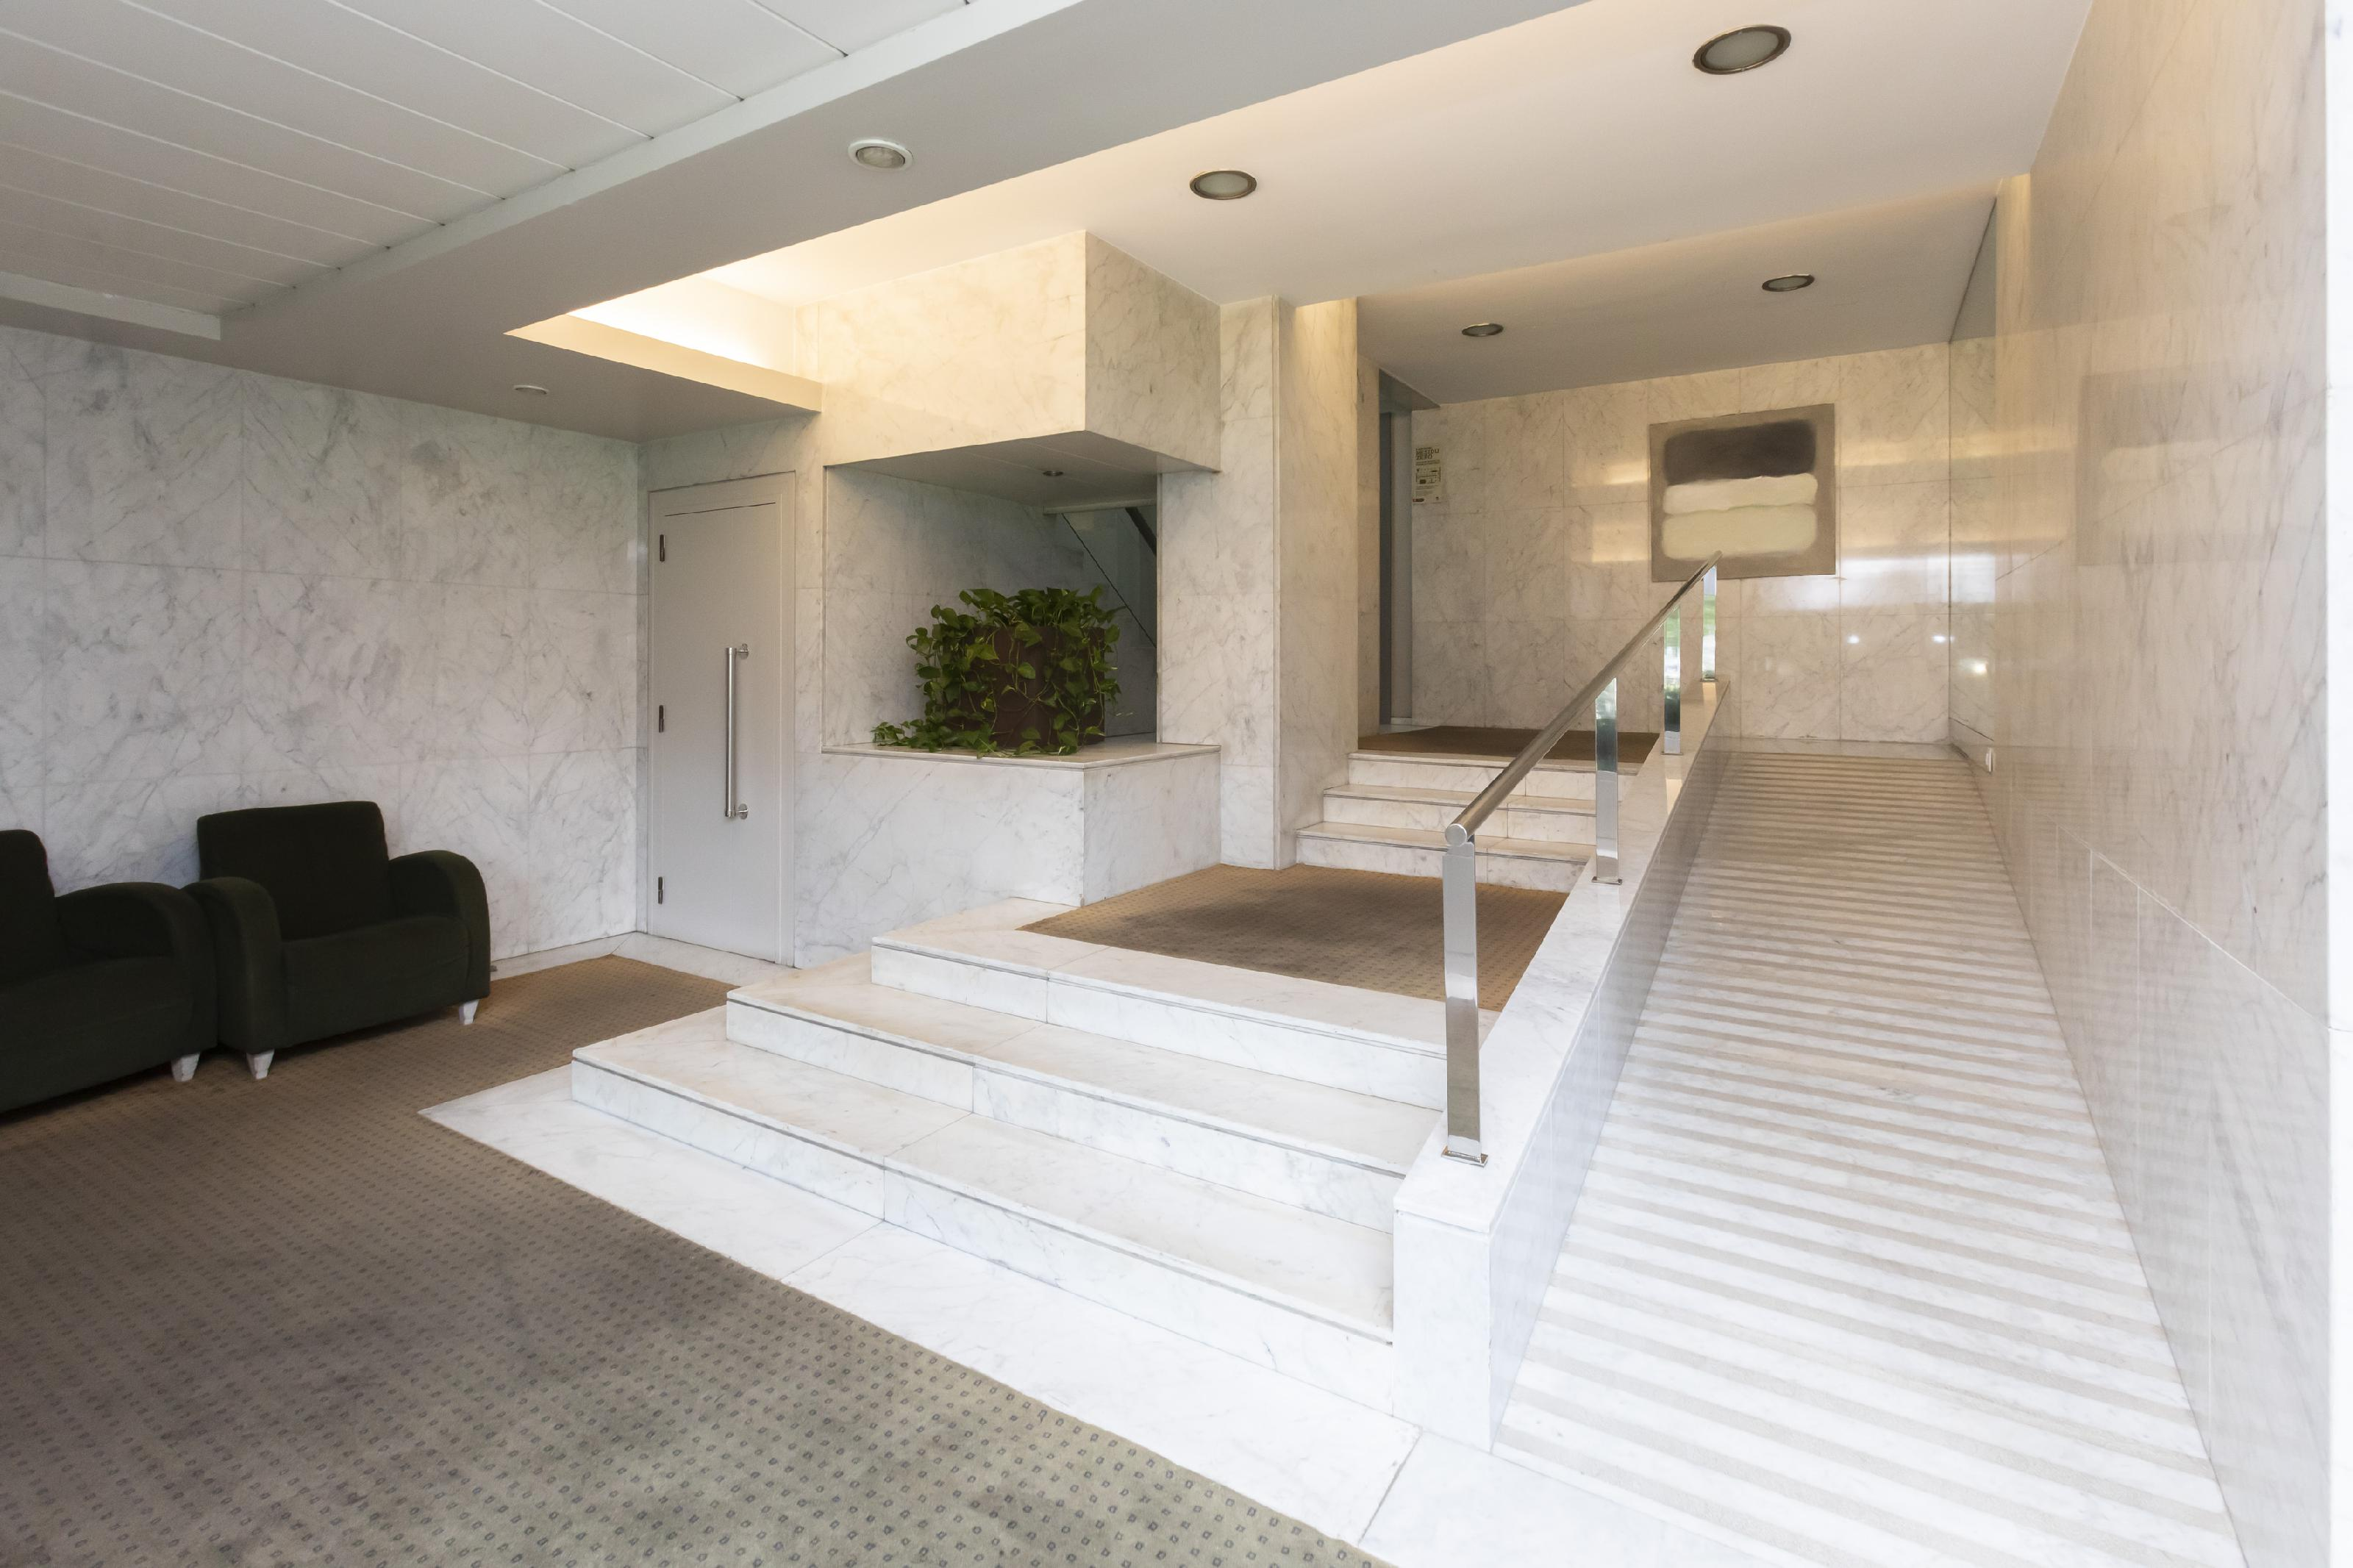 247020 Flat for sale in Les Corts, Les Corts 37